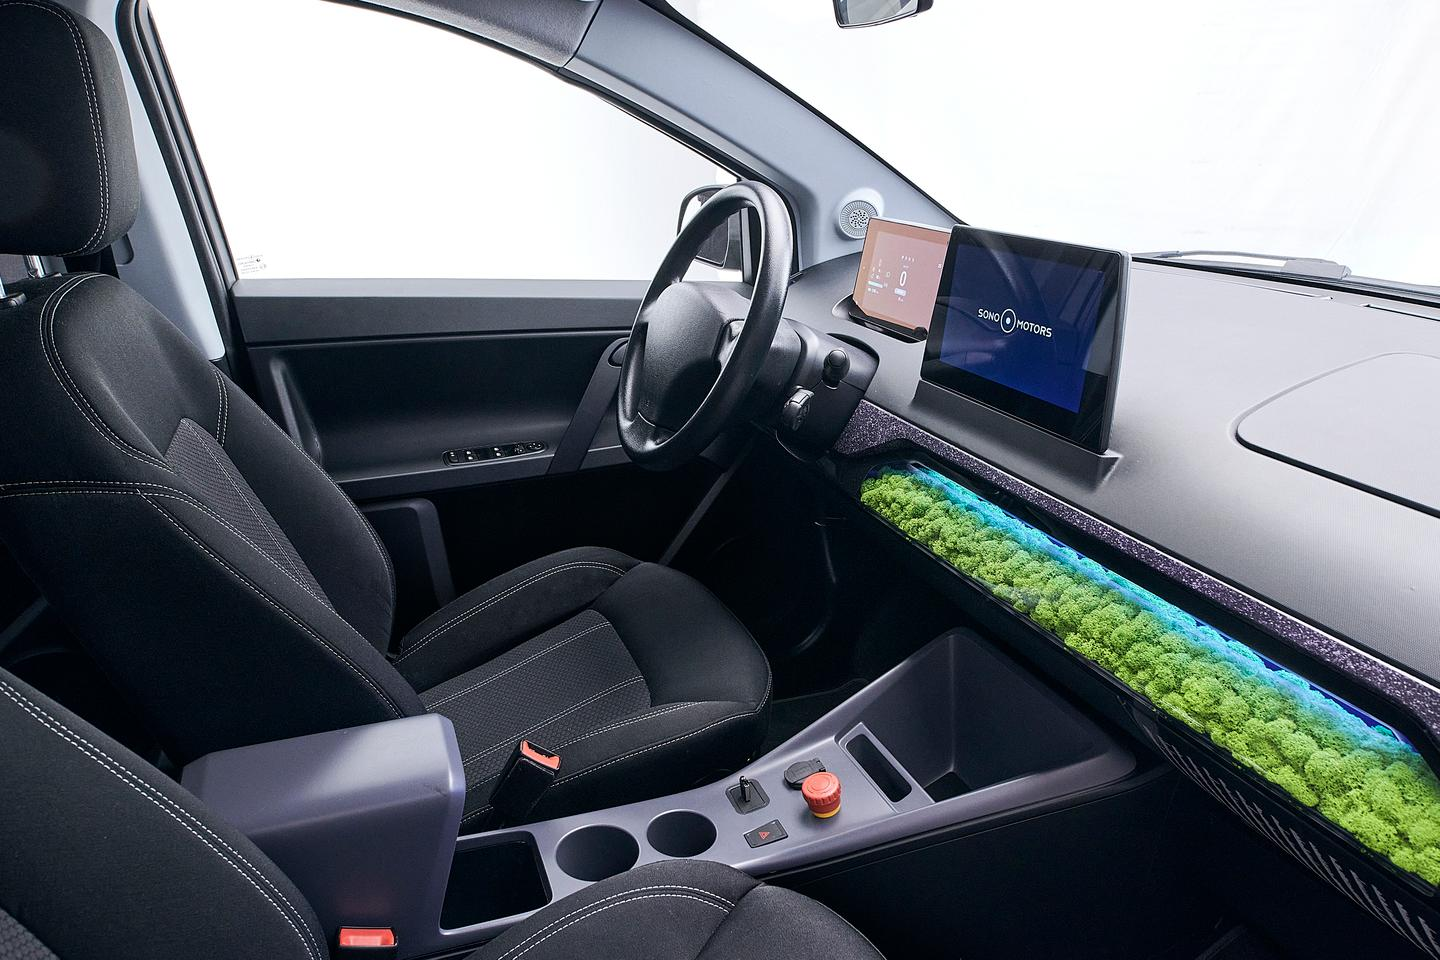 The Sion's interior has been fleshed out in the second generation prototype, with the Island Moss filtration system installed and the infotainment system active